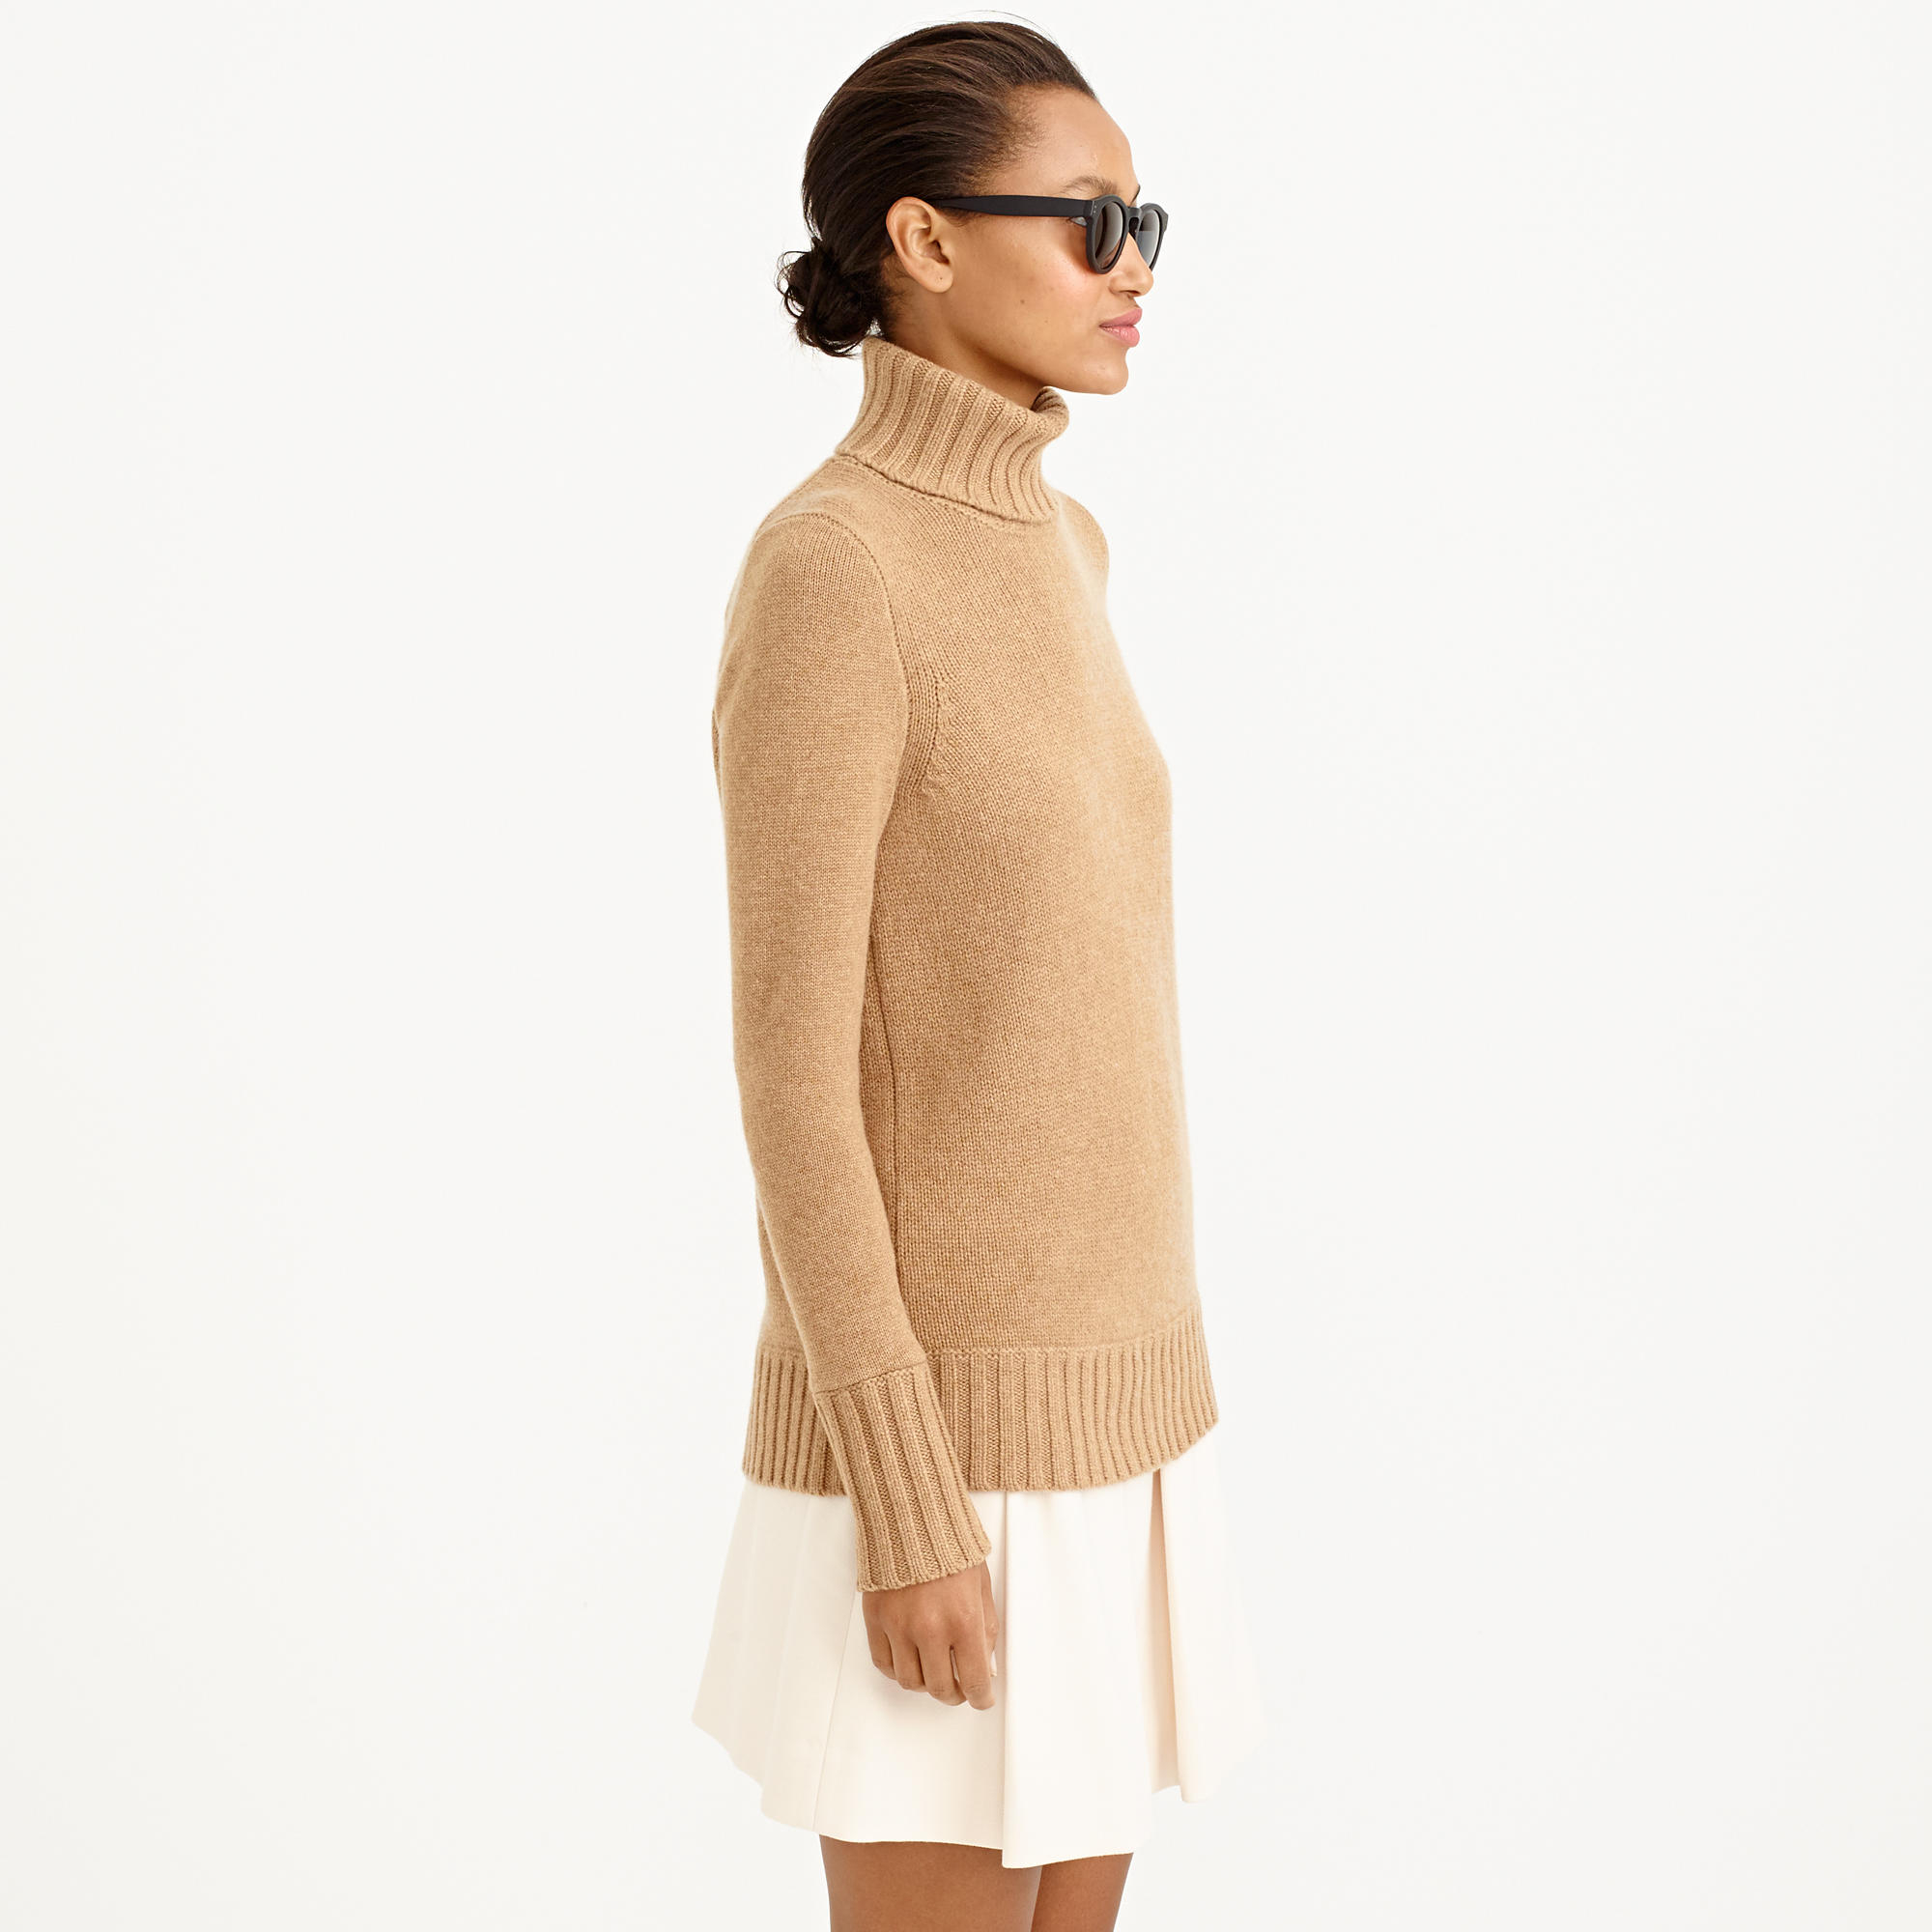 J.crew Collection Cashmere Chunky Turtleneck Sweater in Brown | Lyst